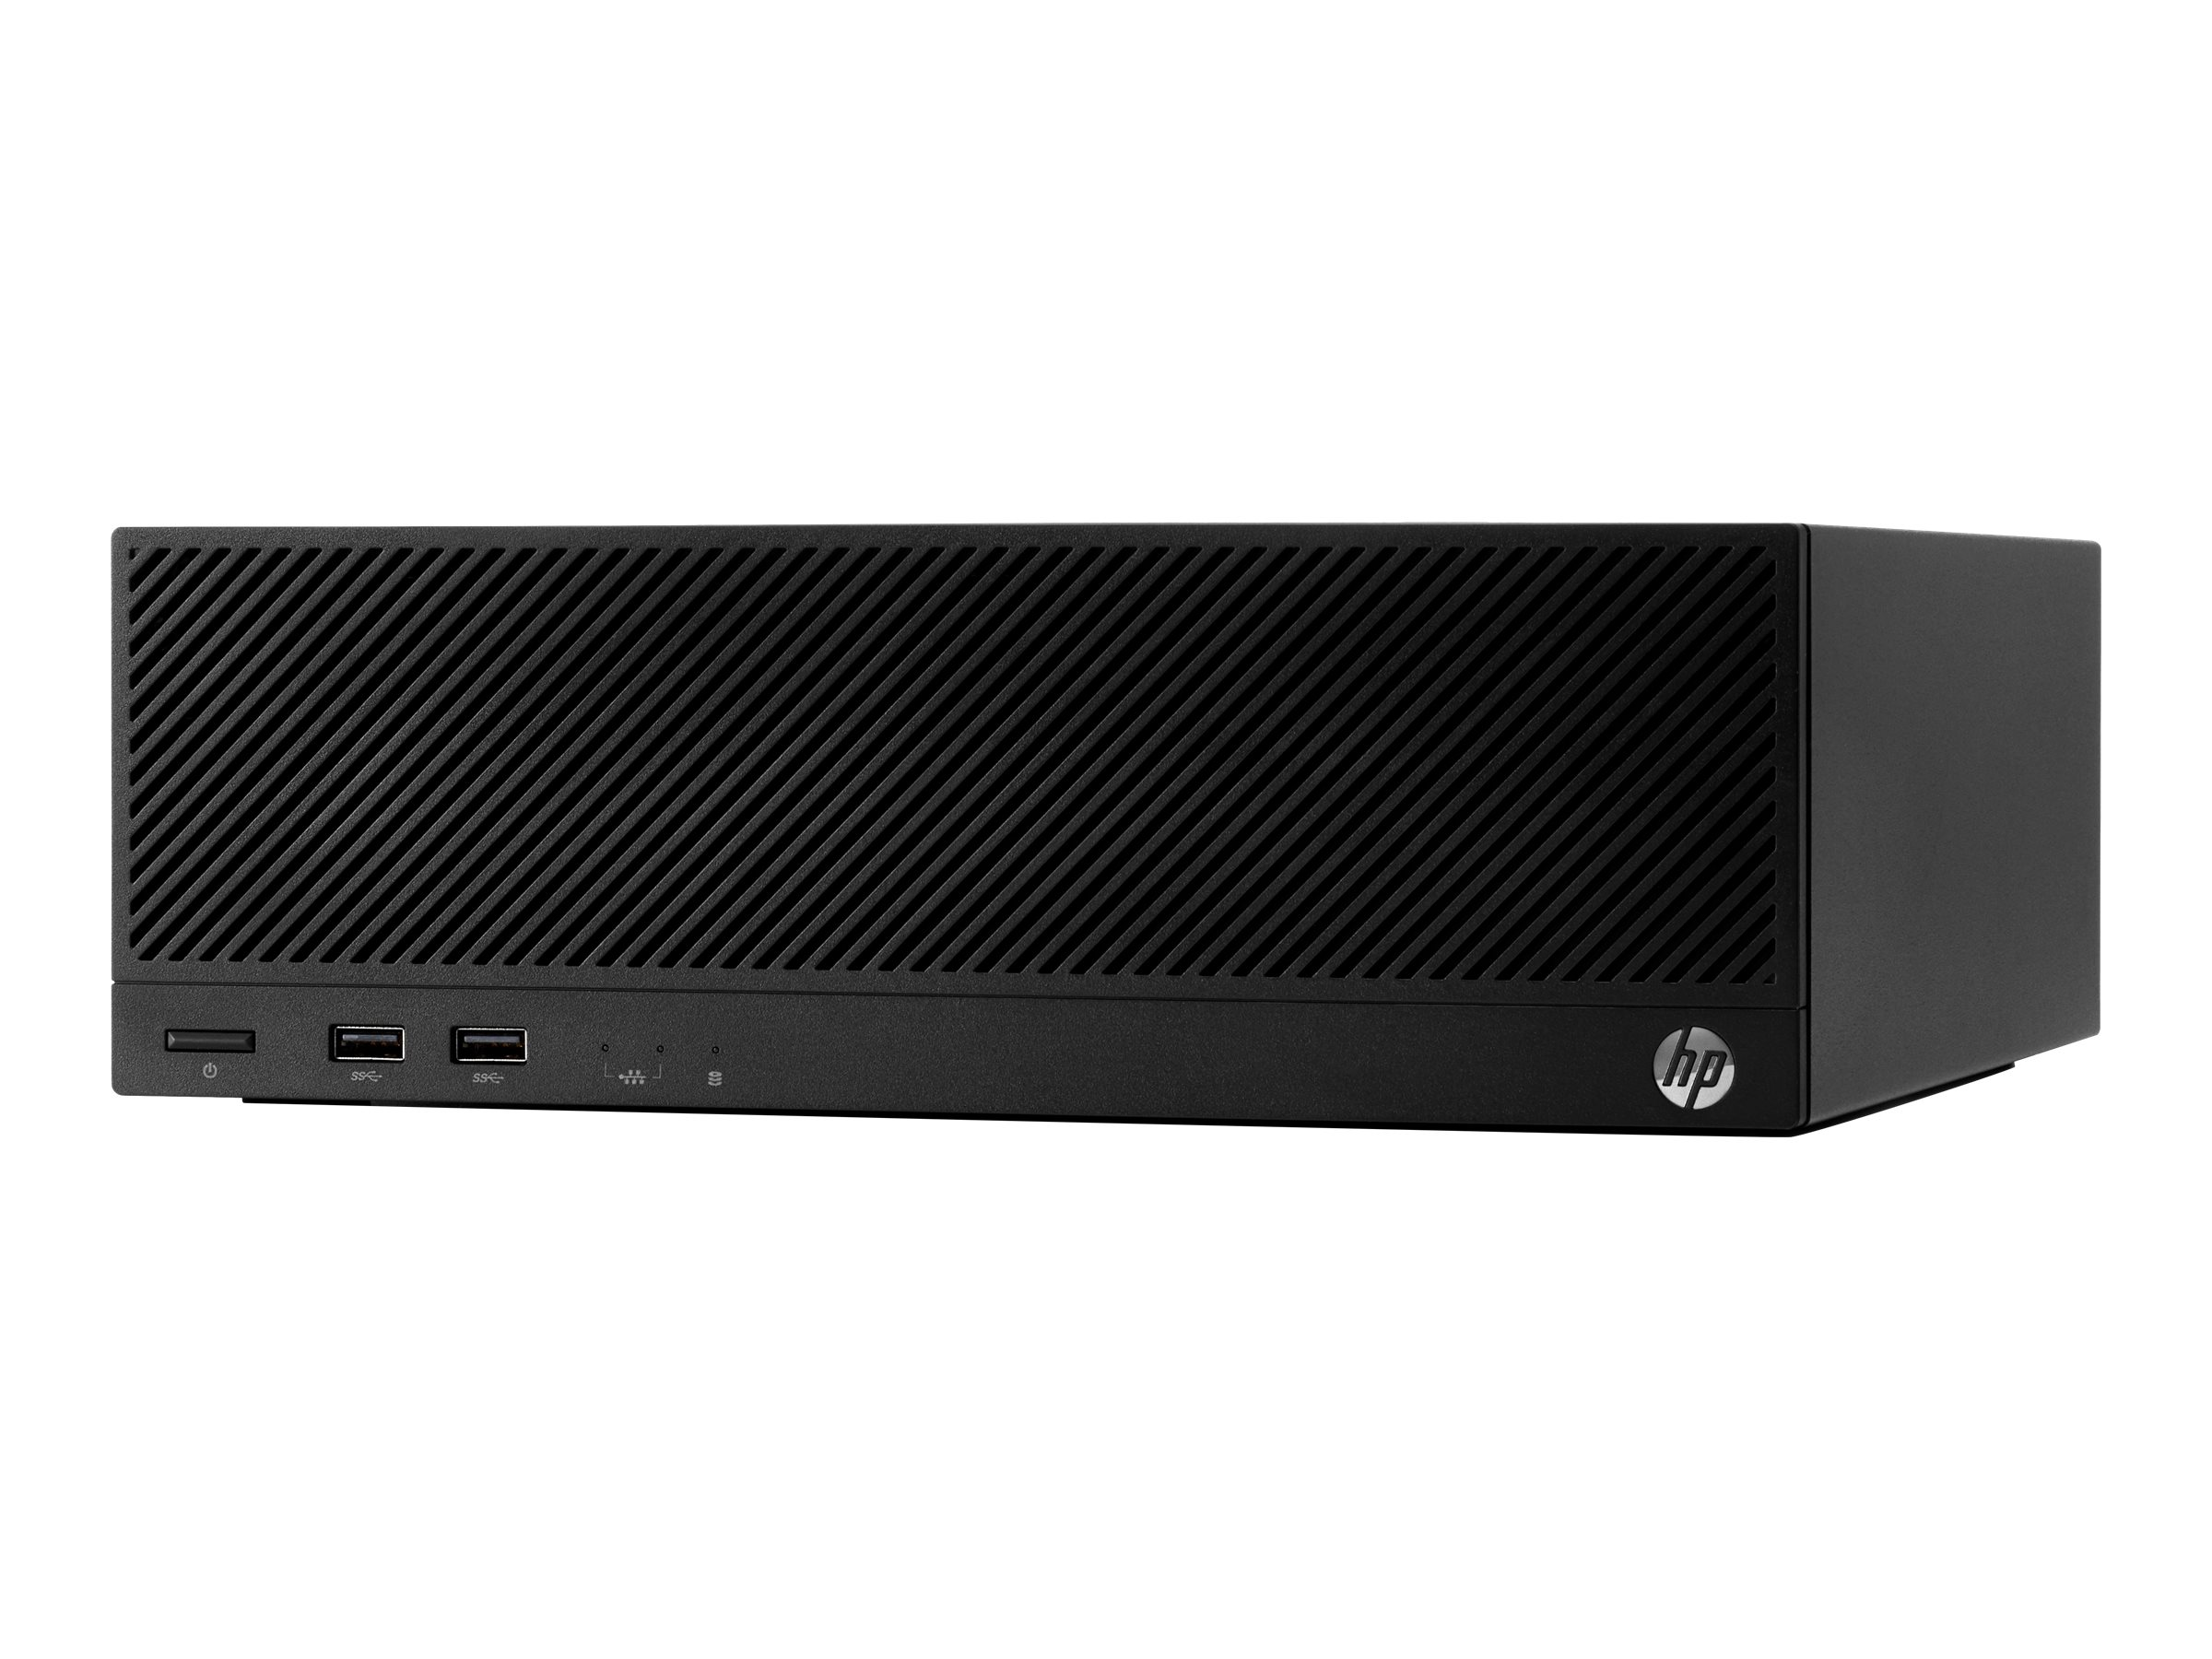 HP Engage Flex Pro-C Retail System - DT - Core i5 8500 3 GHz - 8 GB - SSD 256 GB - US